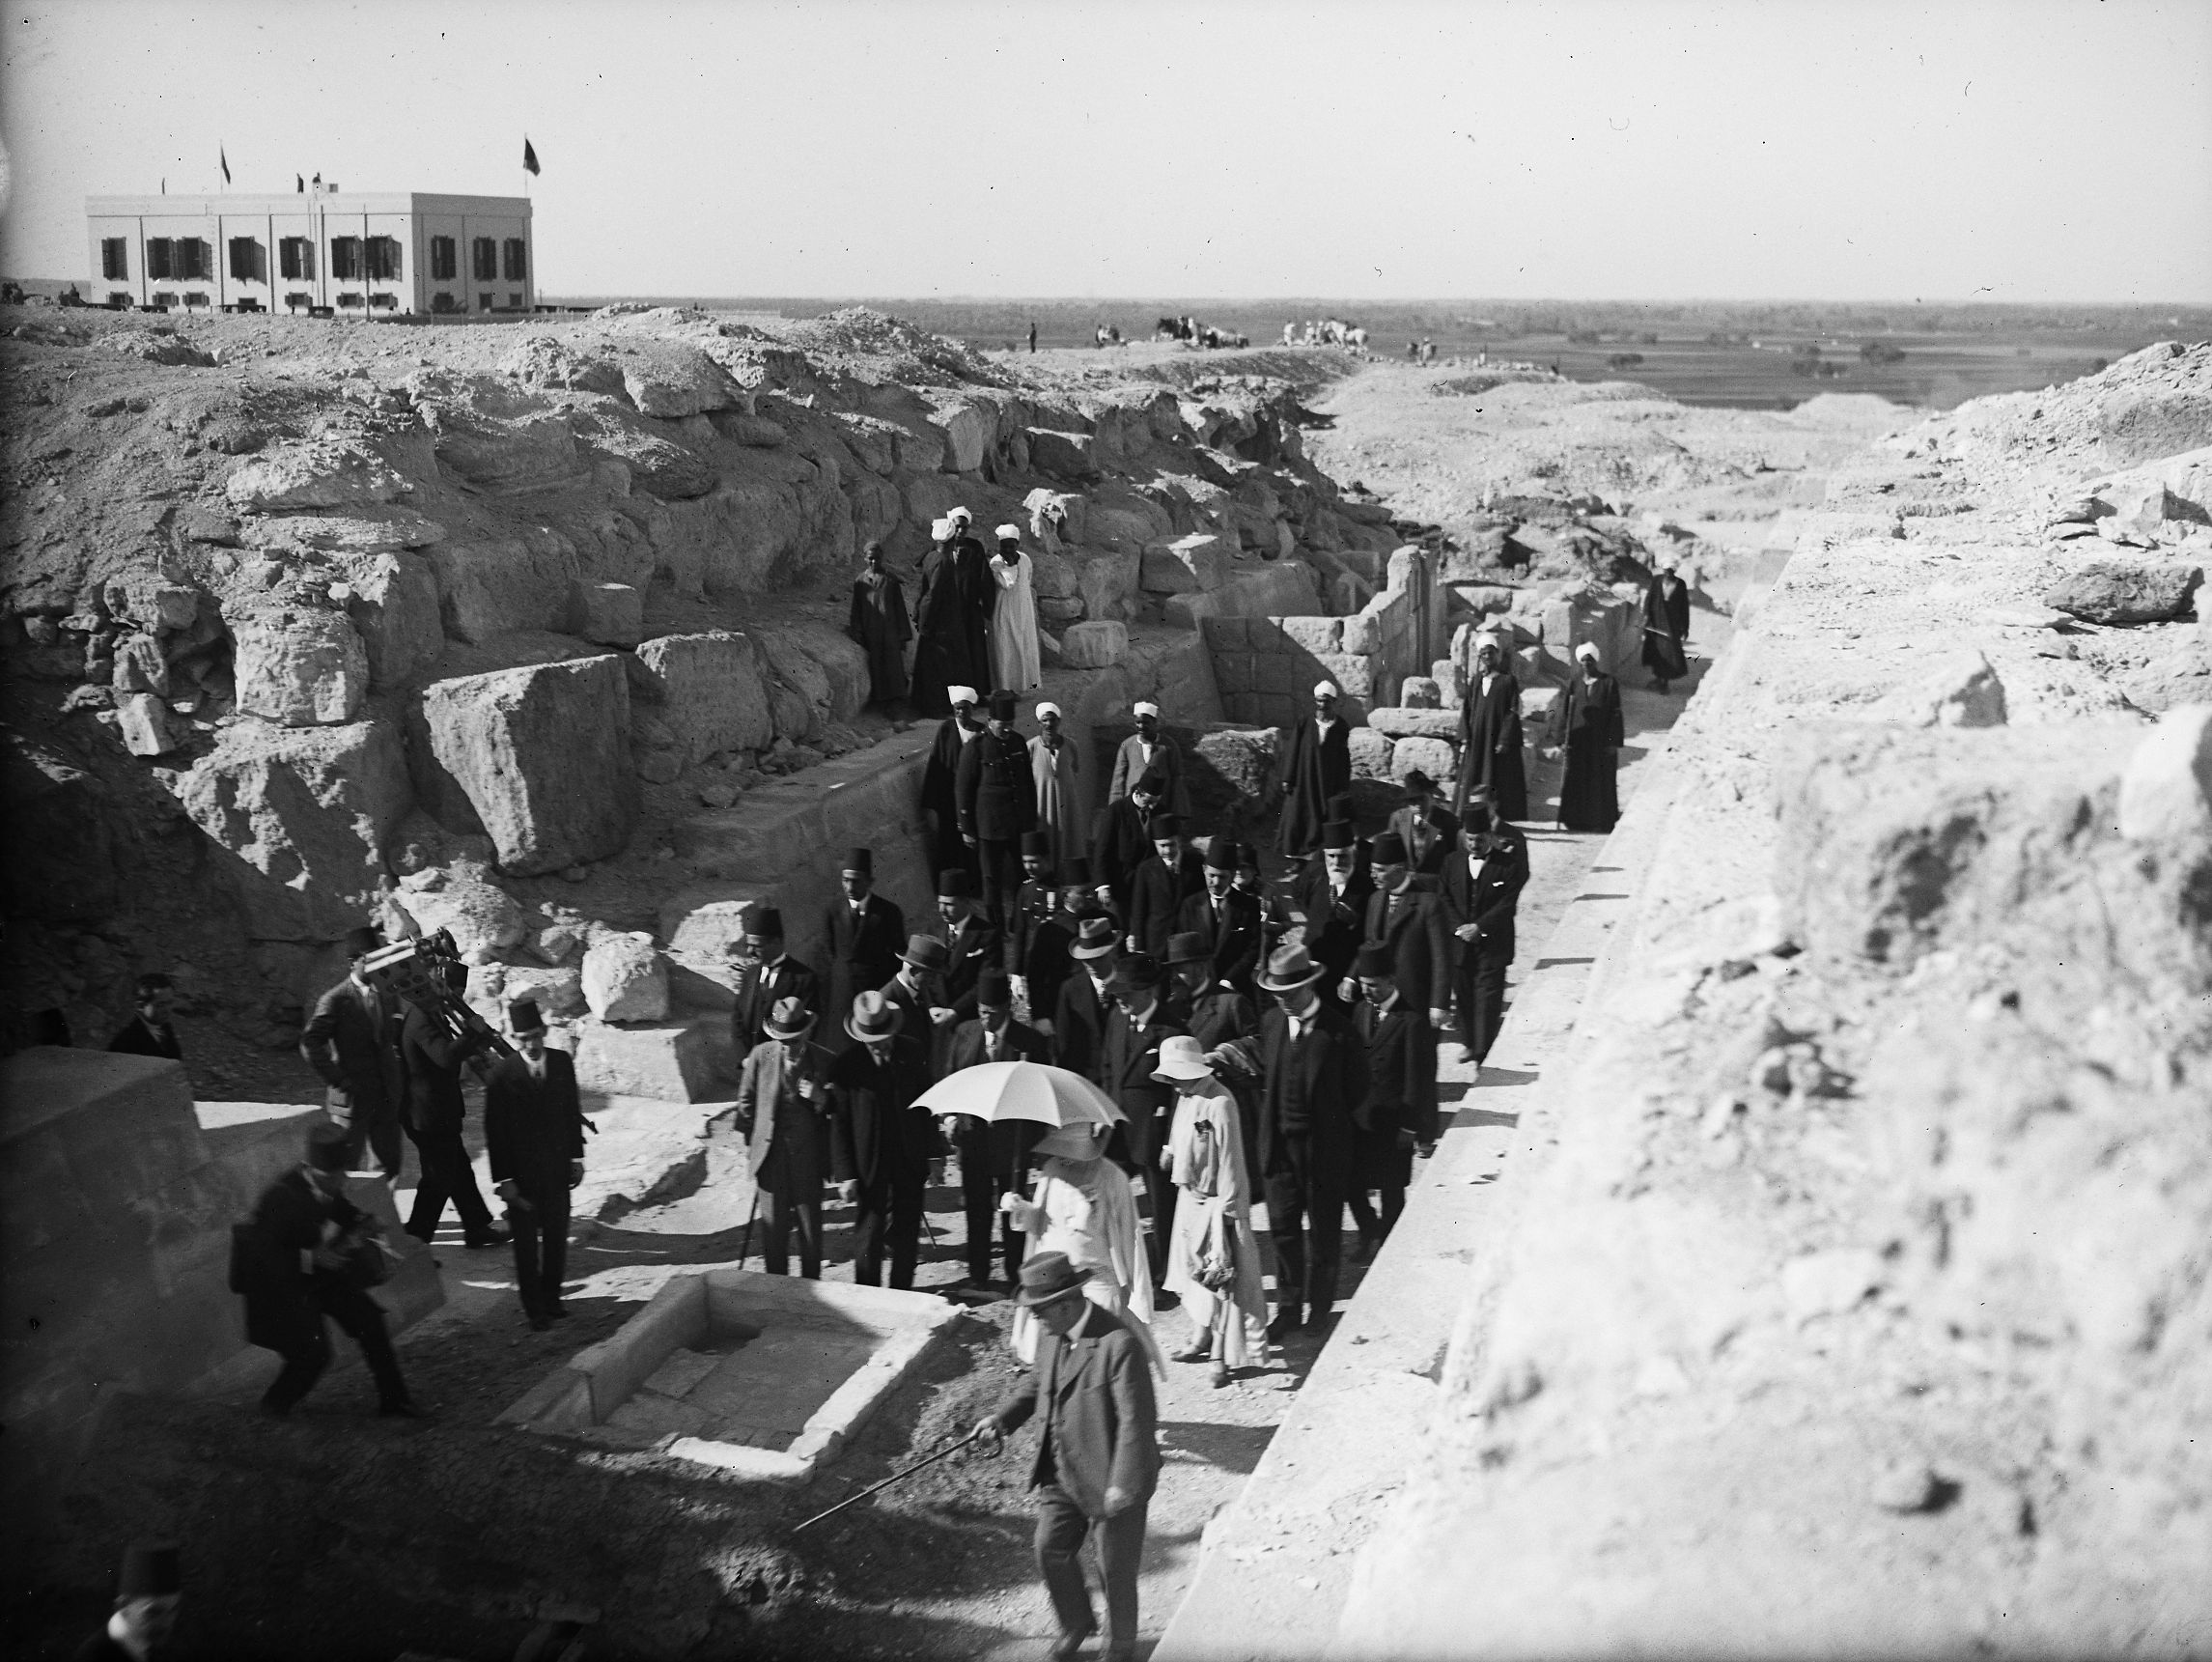 People & places: Site: Giza; View: Giza, G 7210-7220